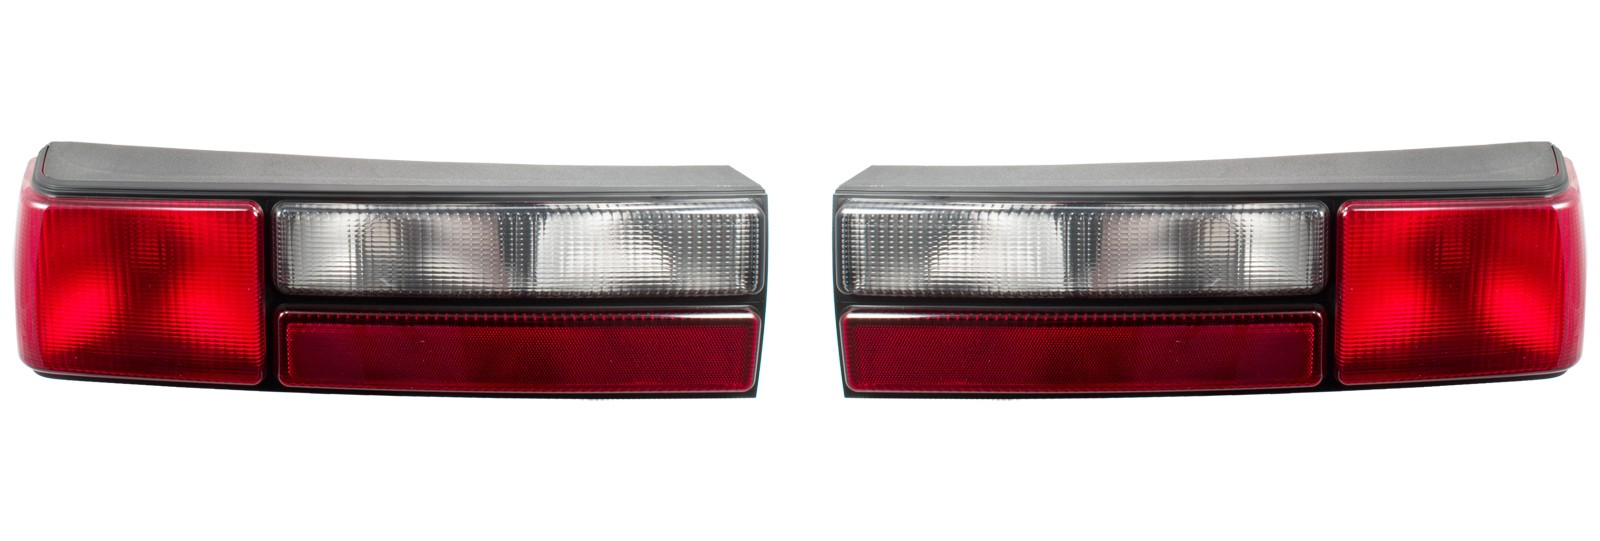 1987-1993 Ford Mustang LX Complete Taillights w/ Housings, Pair